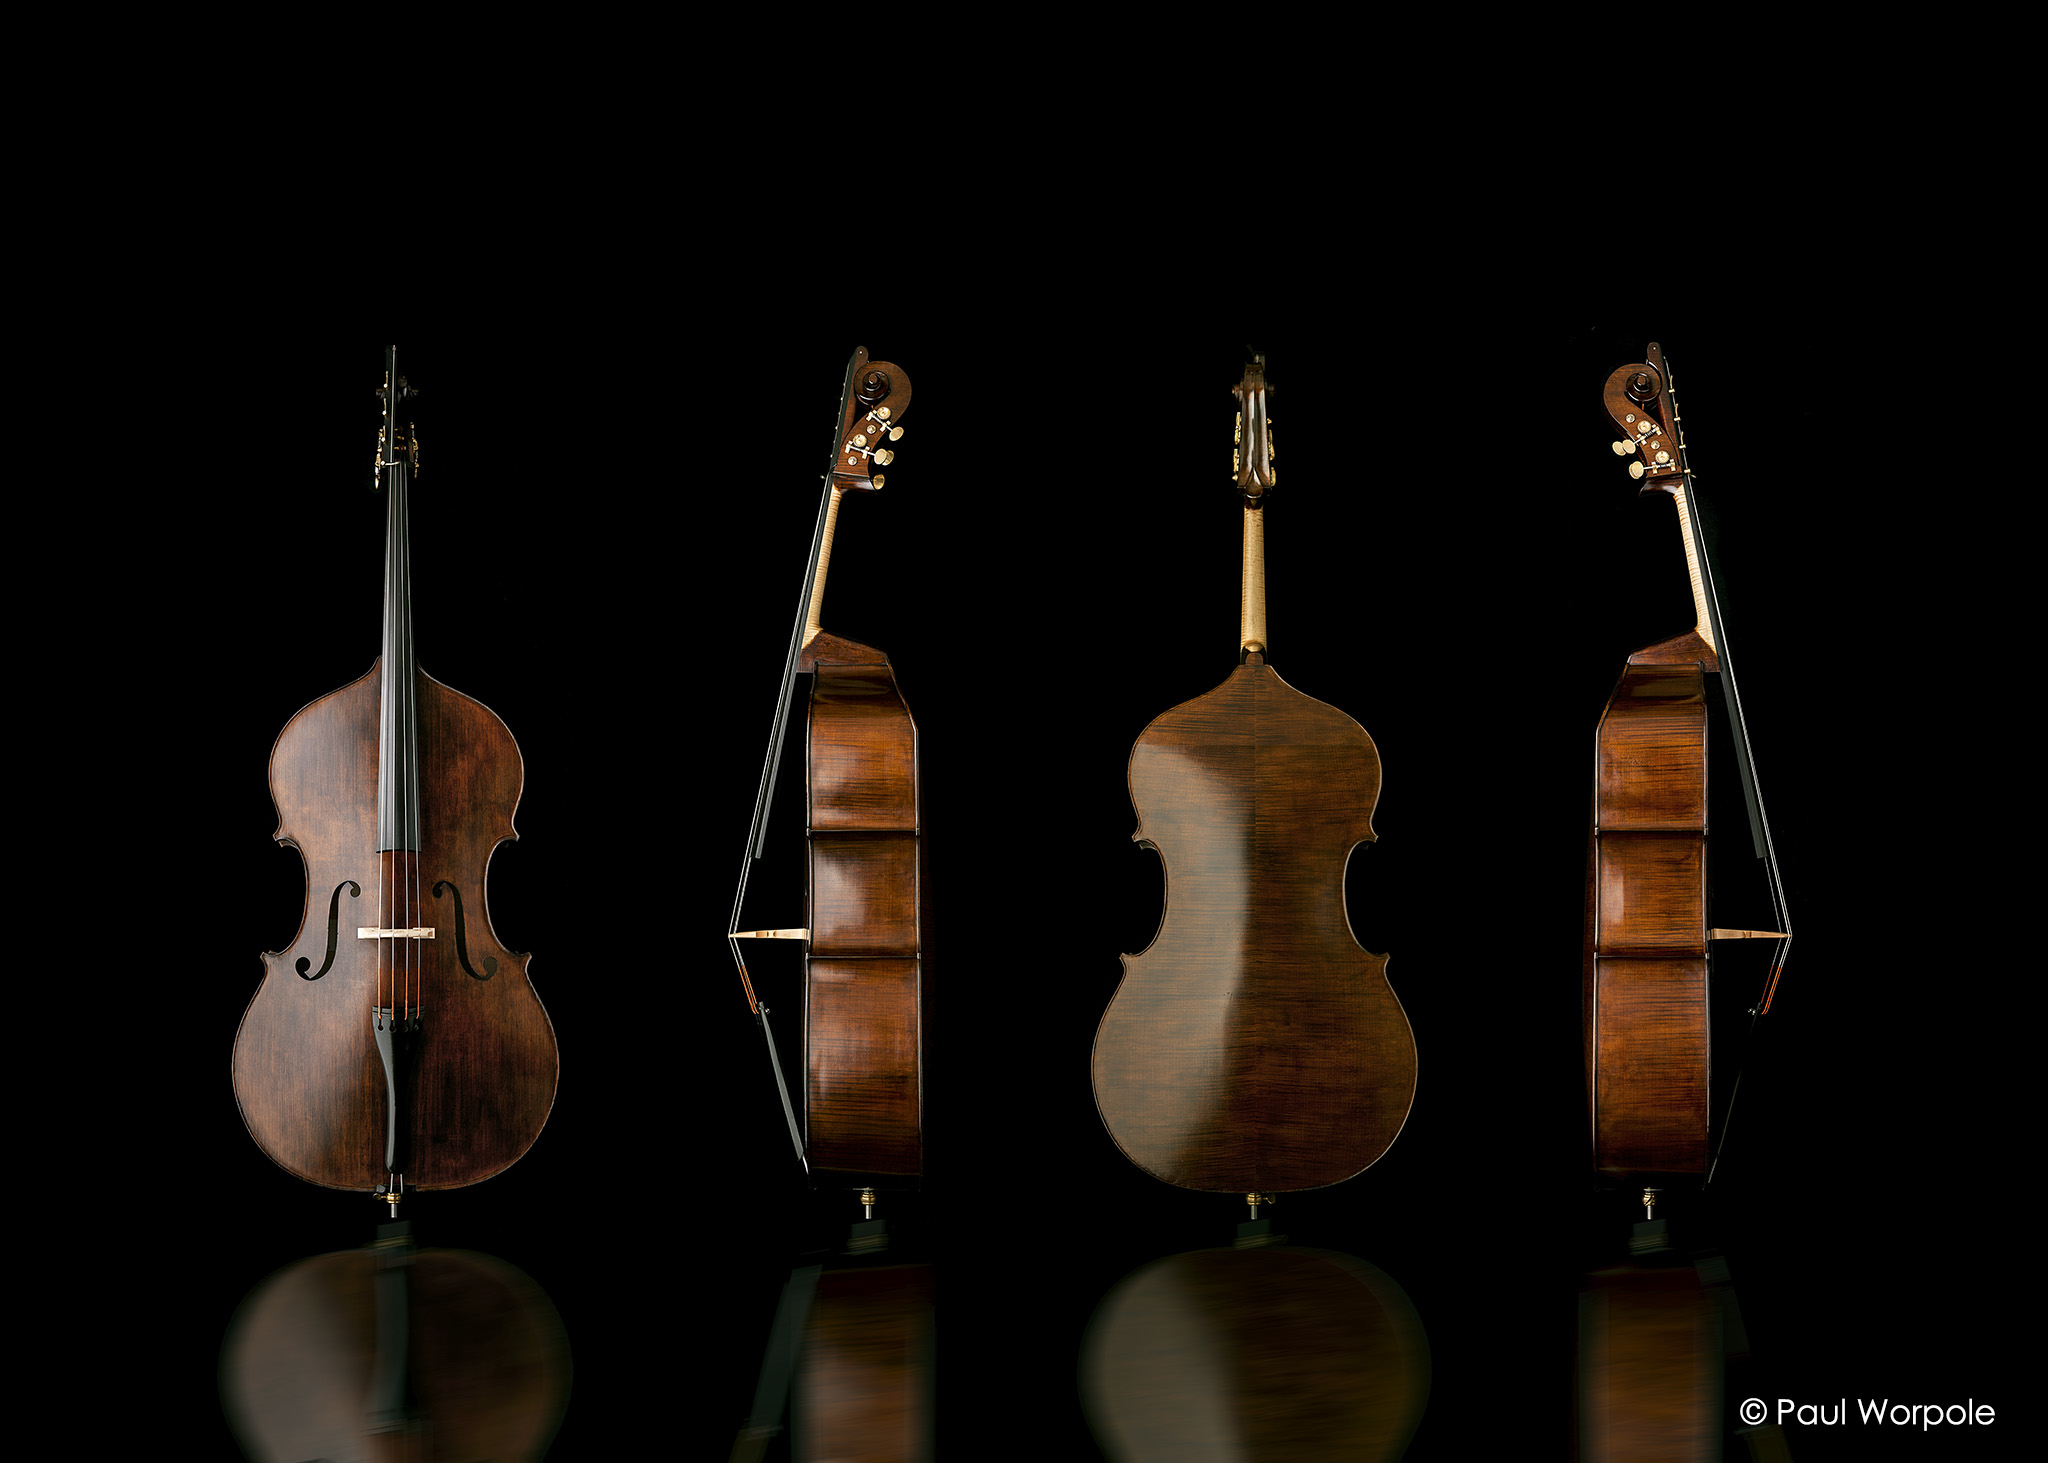 Brochure photography of double bass on black background with reflection © Paul Worpole Photography